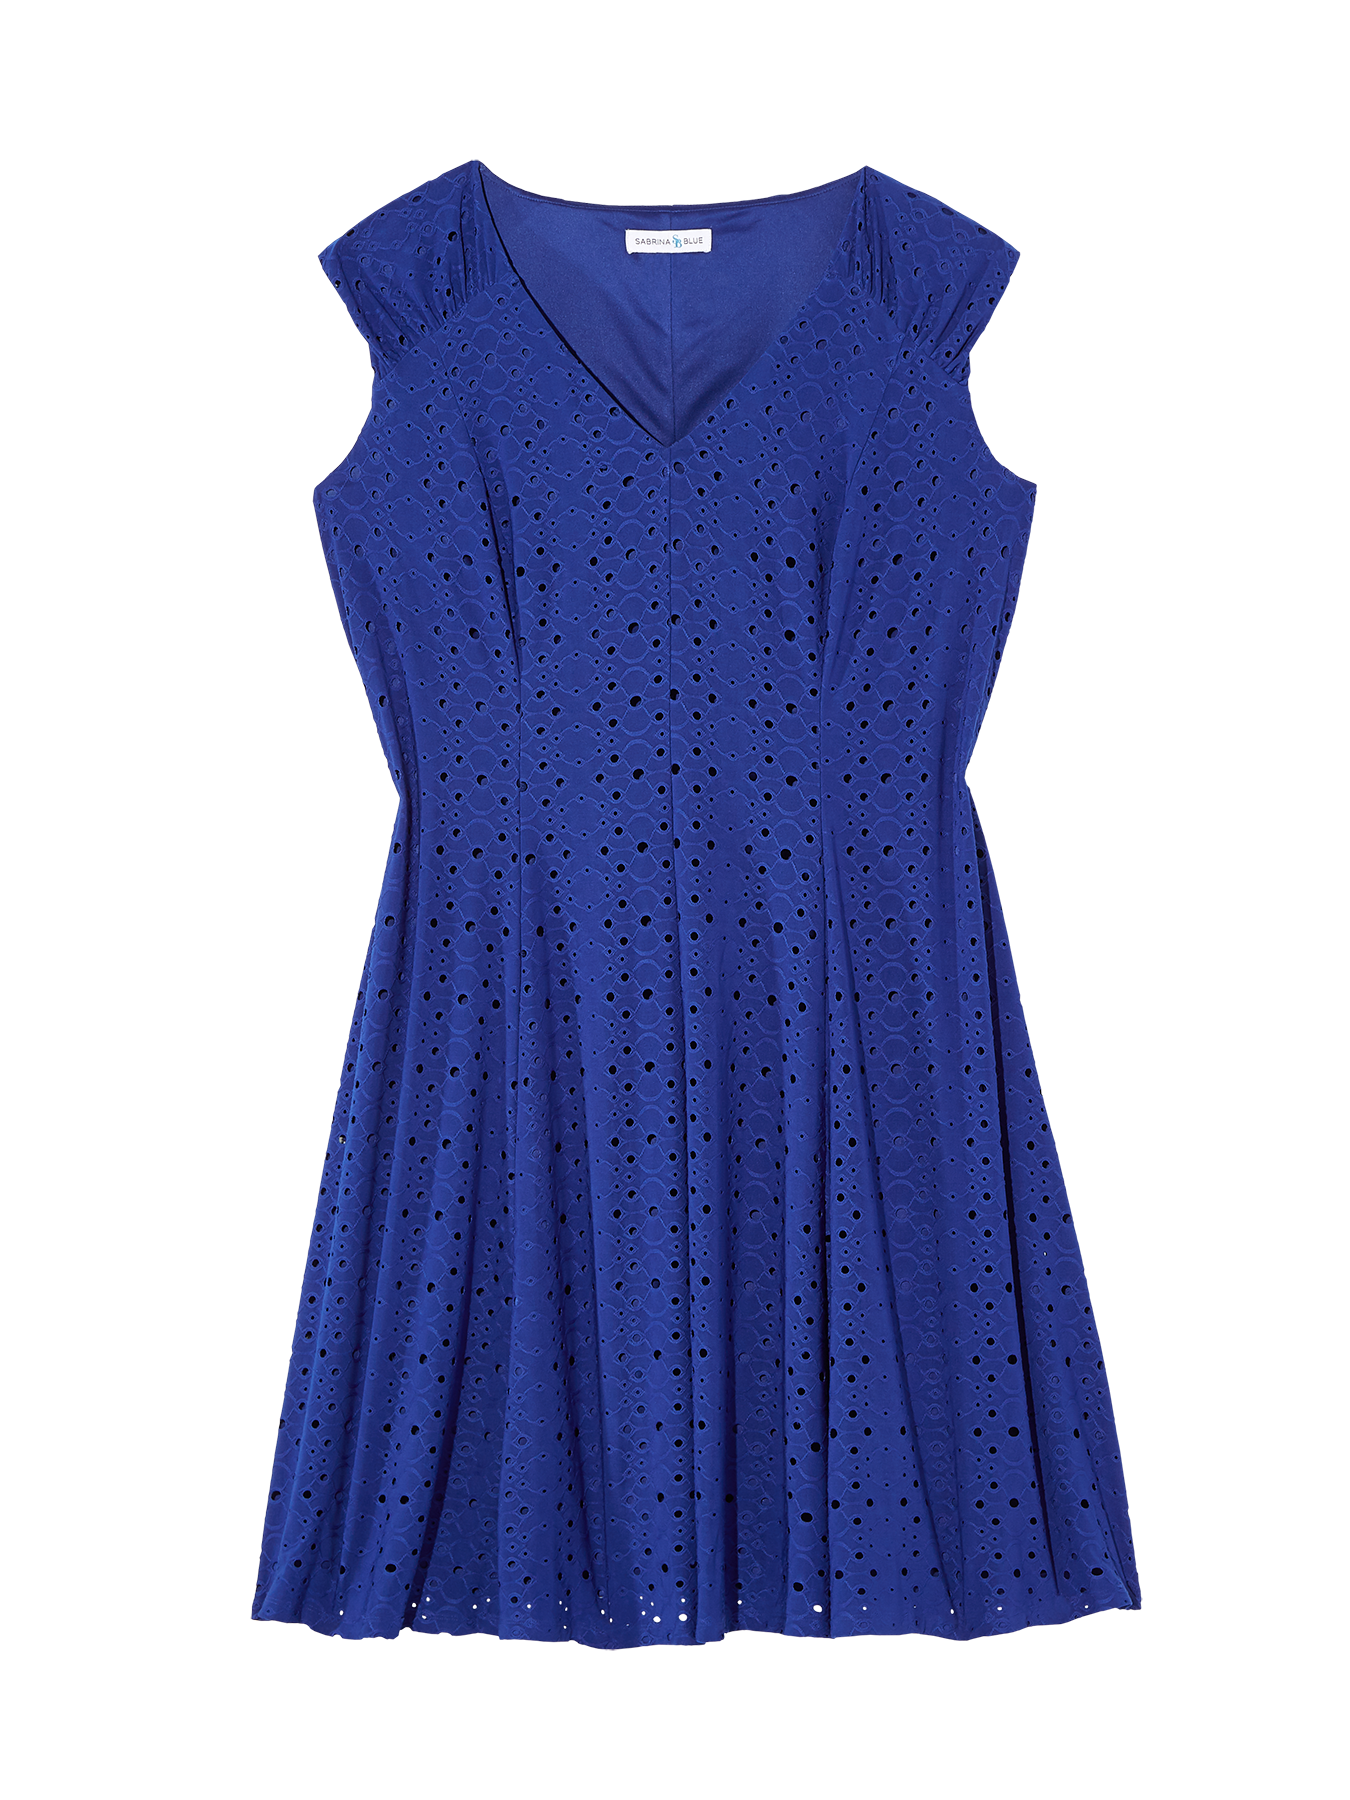 plus size blue dress